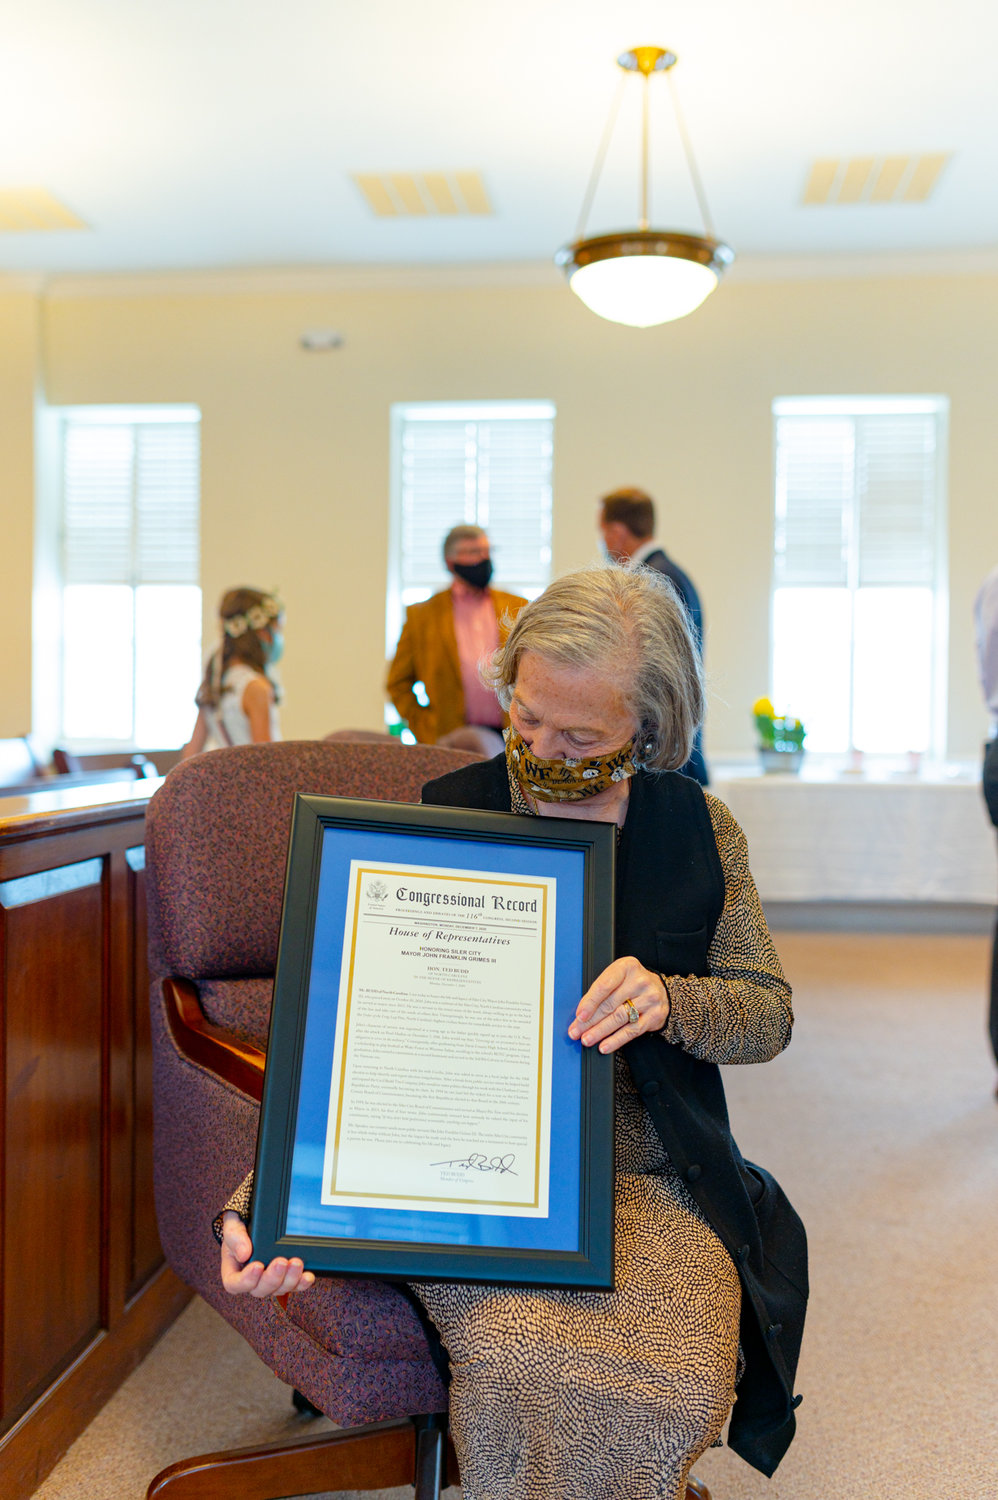 Cecilia Grimes holds the Congressional Record, which was submitted to Congress on Dec. 7 — the anniversary of the bombing of Pearl Harbor.